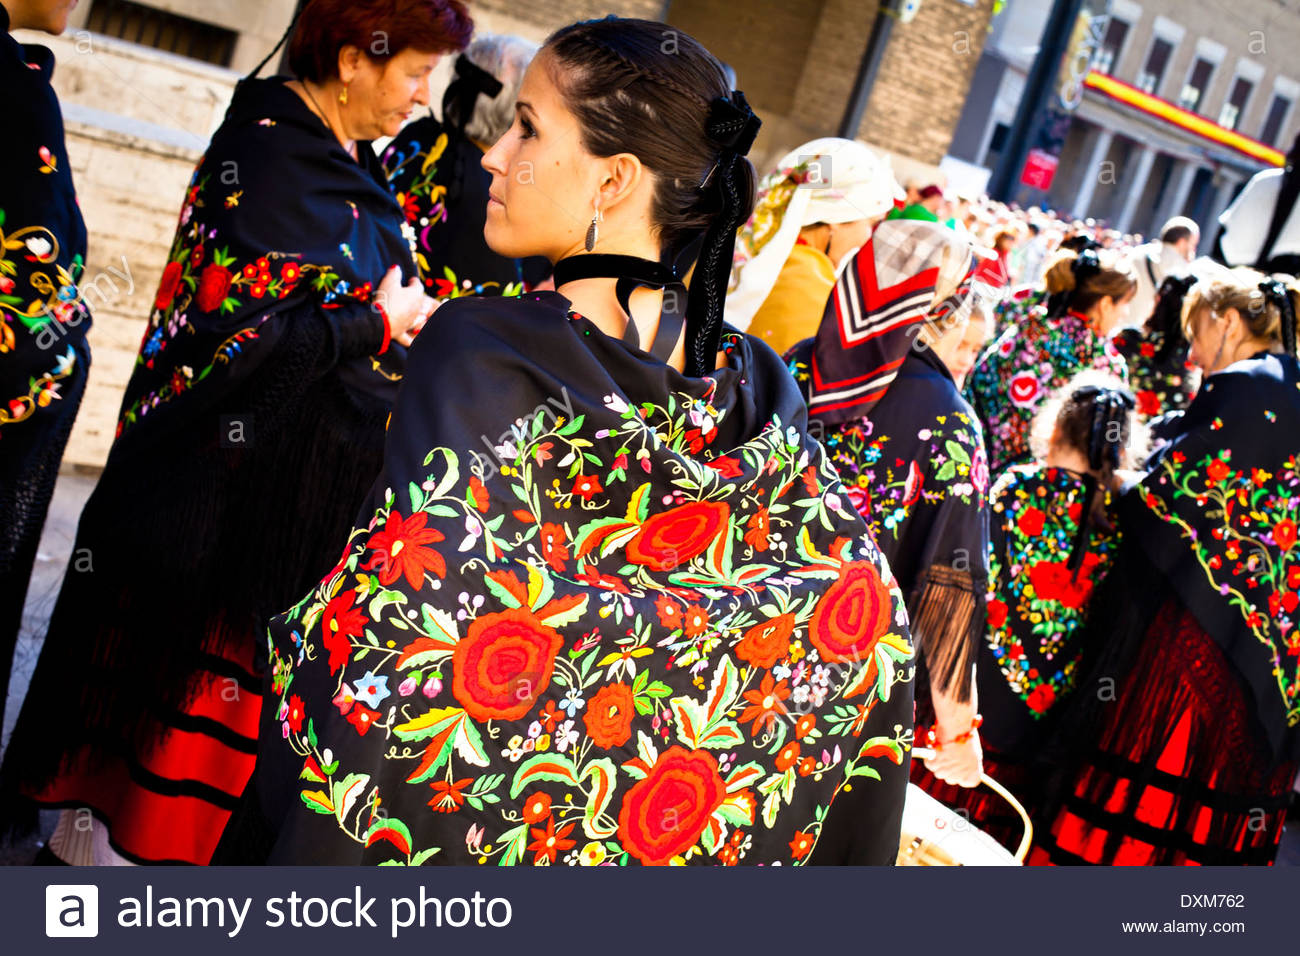 Spain, Aragon, Zaragoza, Pilar, young woman with traditional clothes - Stock Image